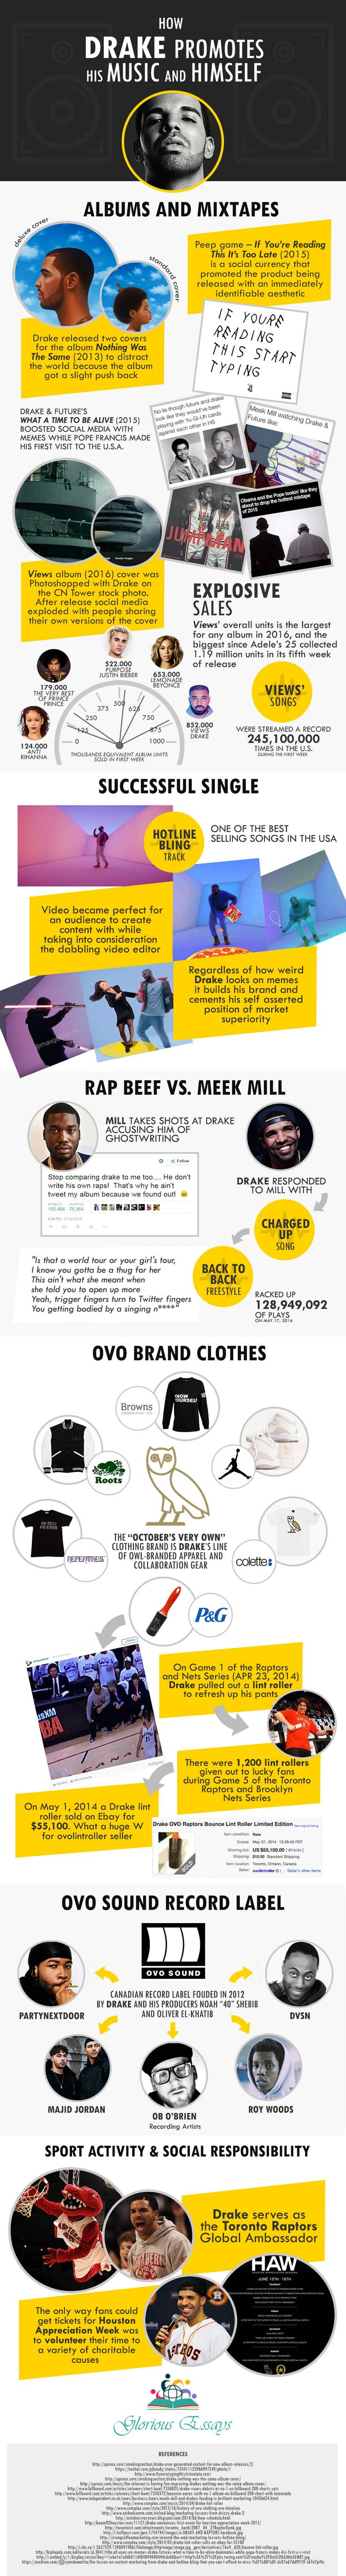 How Drake Promotes His Music And Himself Infographic. Topic: rapper, rap, singer, marketing